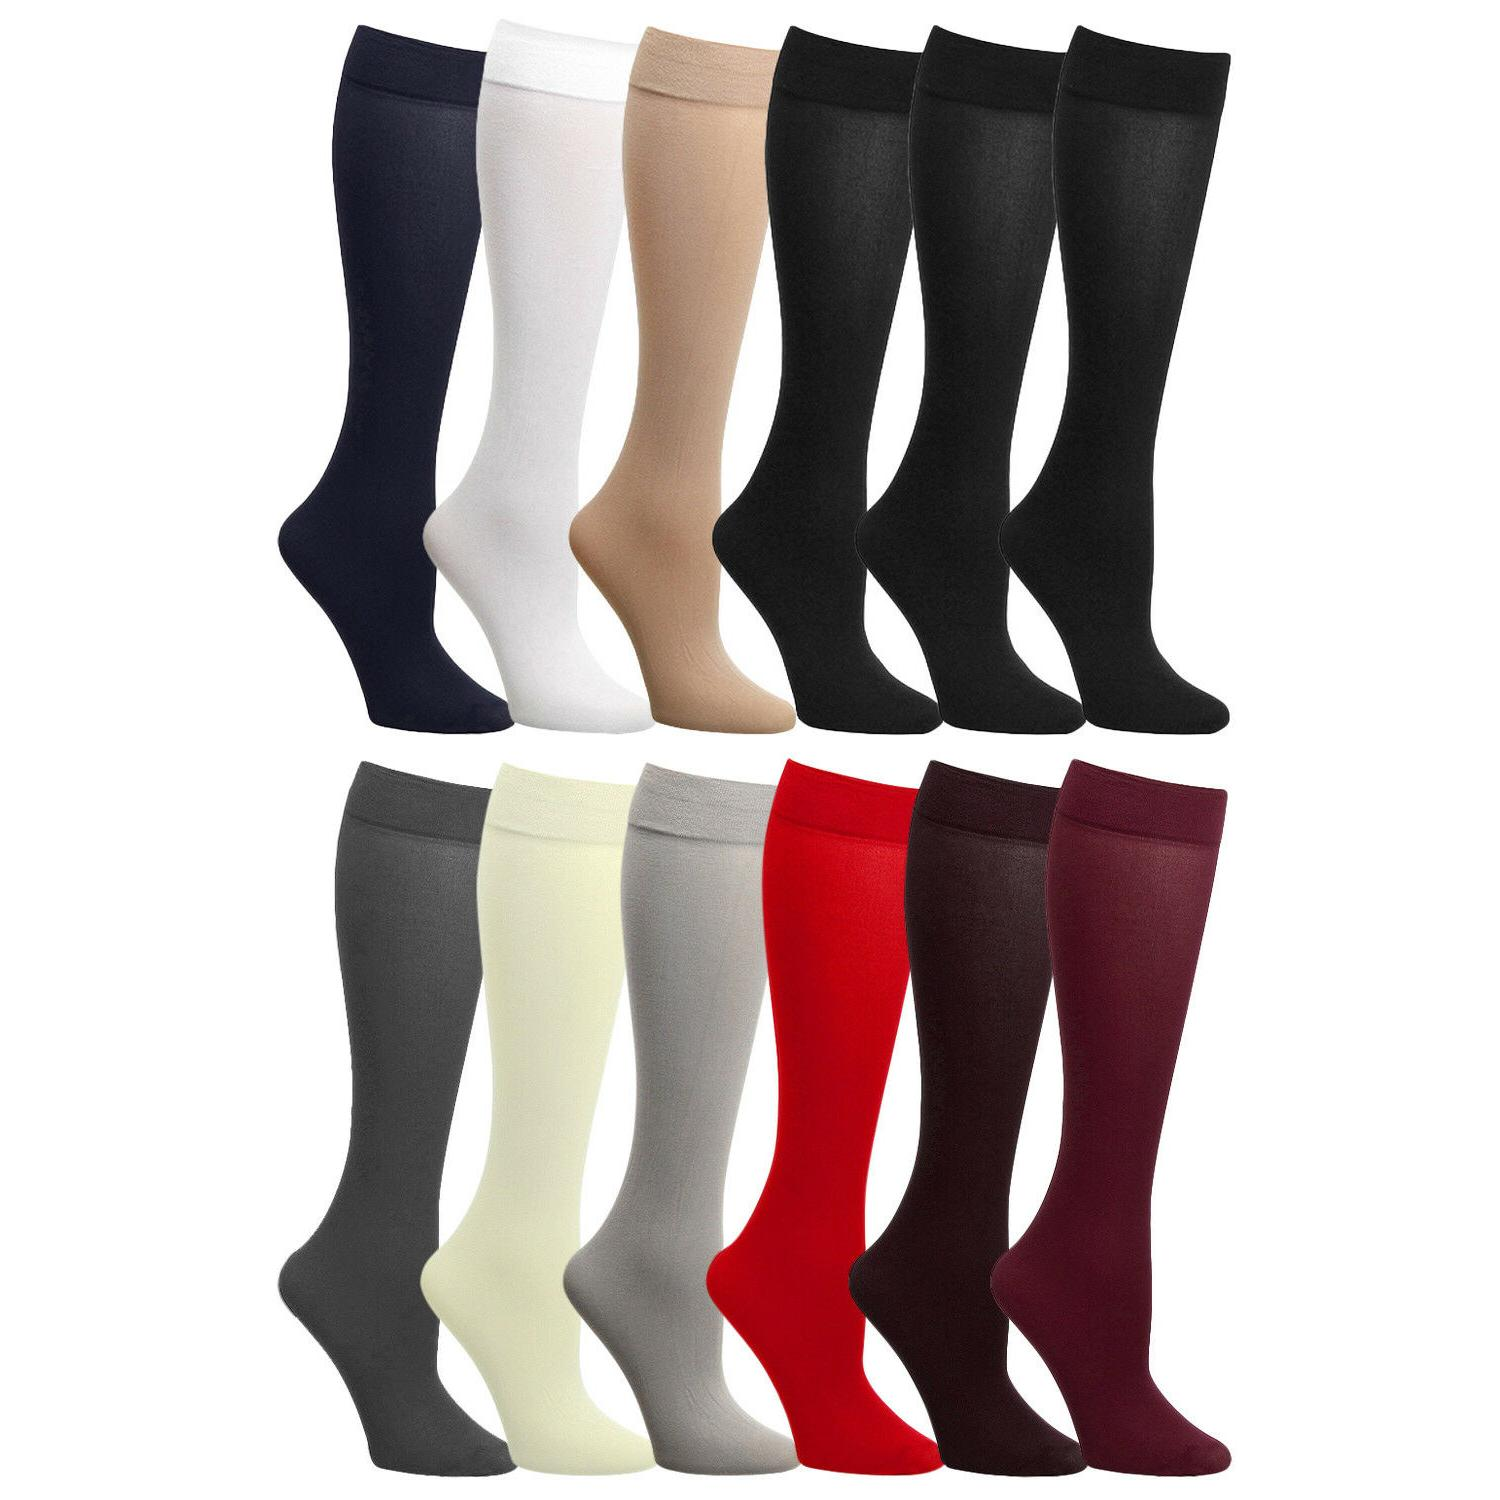 12-Pairs Pack Women Trousers Dress Socks Opaque Knee High St